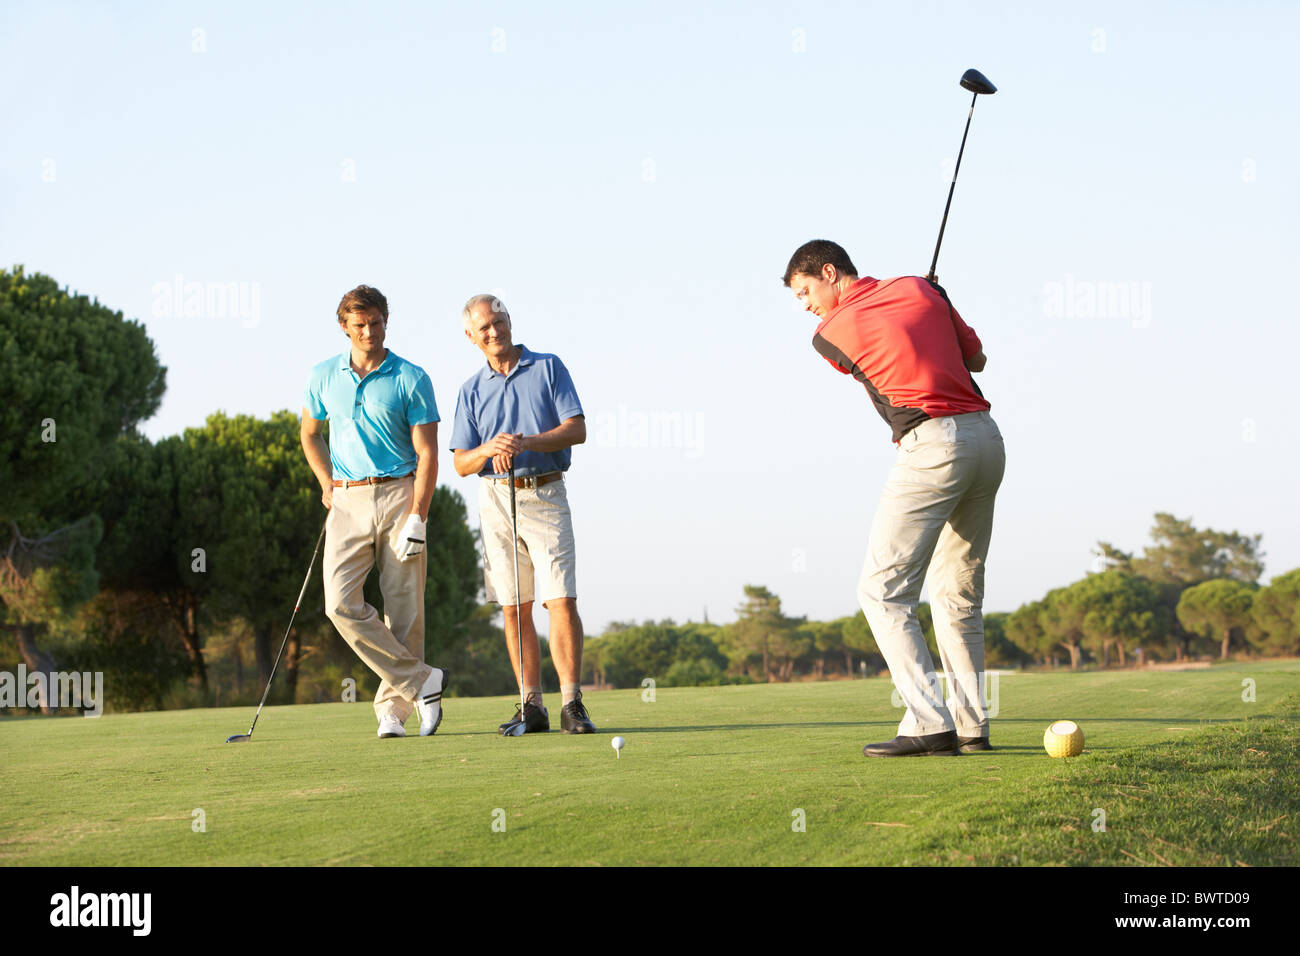 Group, Male Golfers Teeing,f On Golf Course - Stock Image